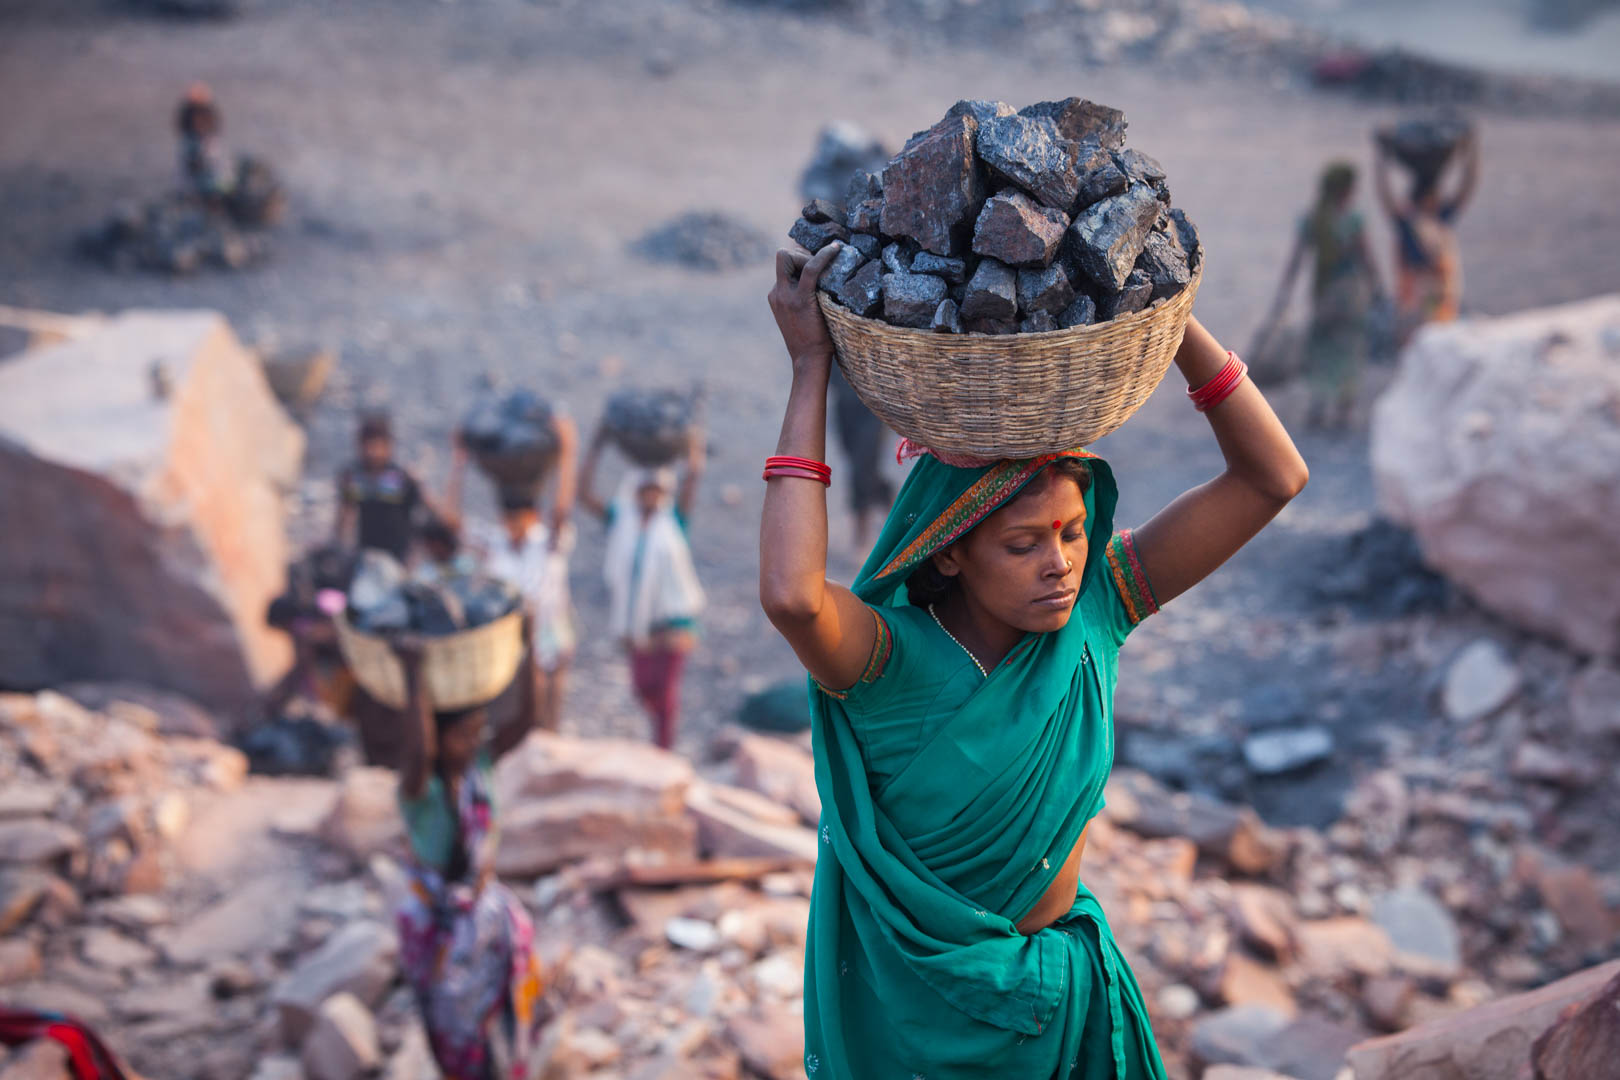 A young woman is carrying coal in a basket to a collecting spot. Men and woman alike miss school and other educational opportunities for their work in the mines.